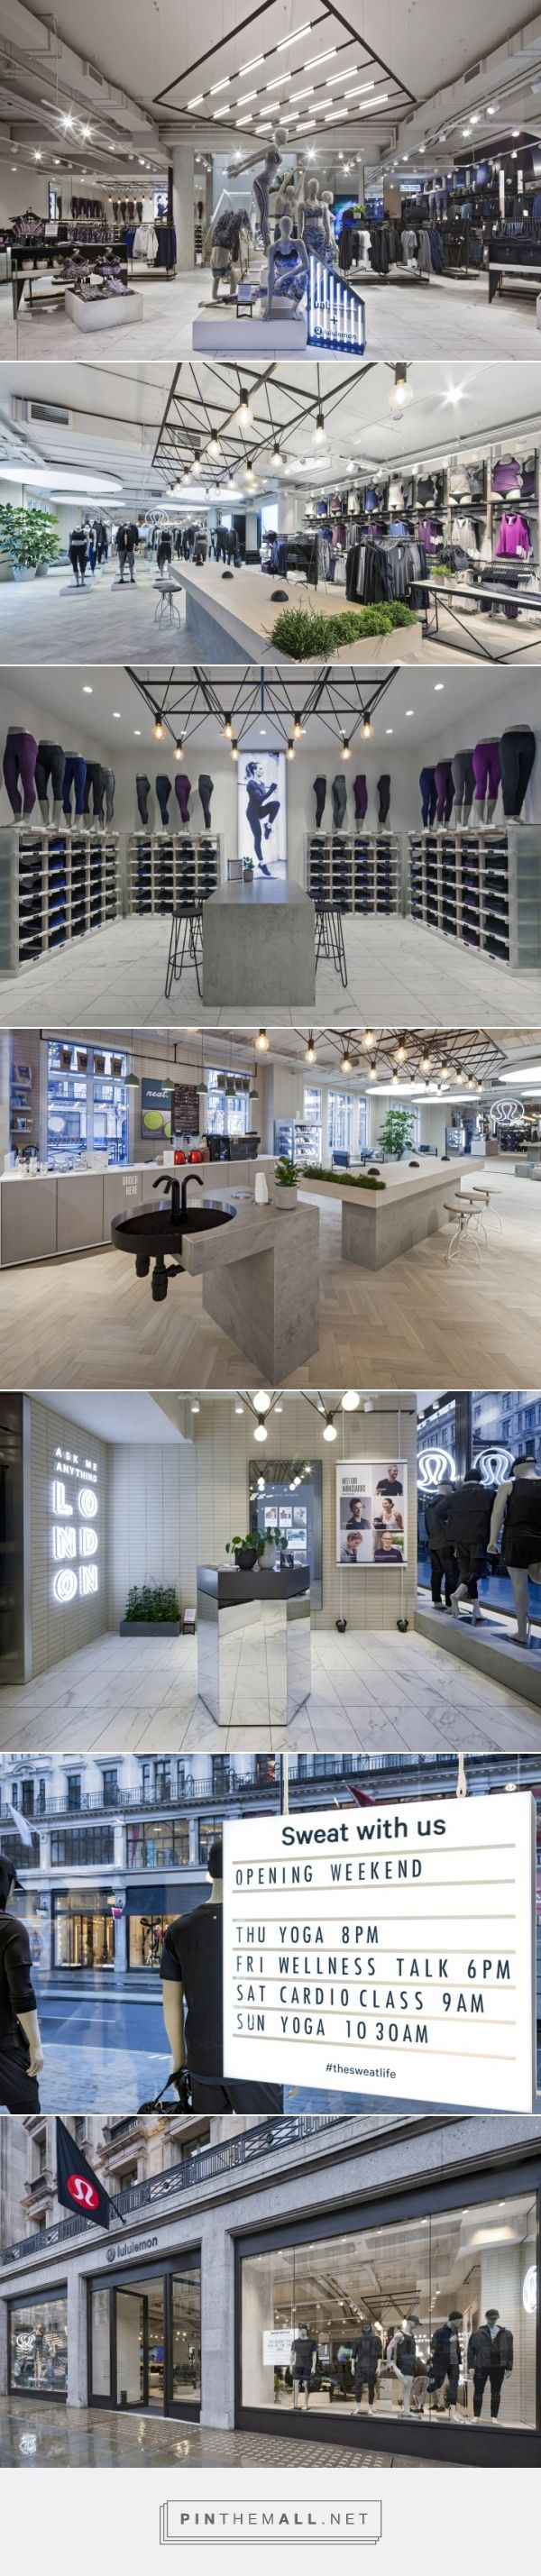 Glamshops visual merchandising & shop reviews - Lululemon store by Dalziel-Pow, London – UK - created via https://pinthemall.net